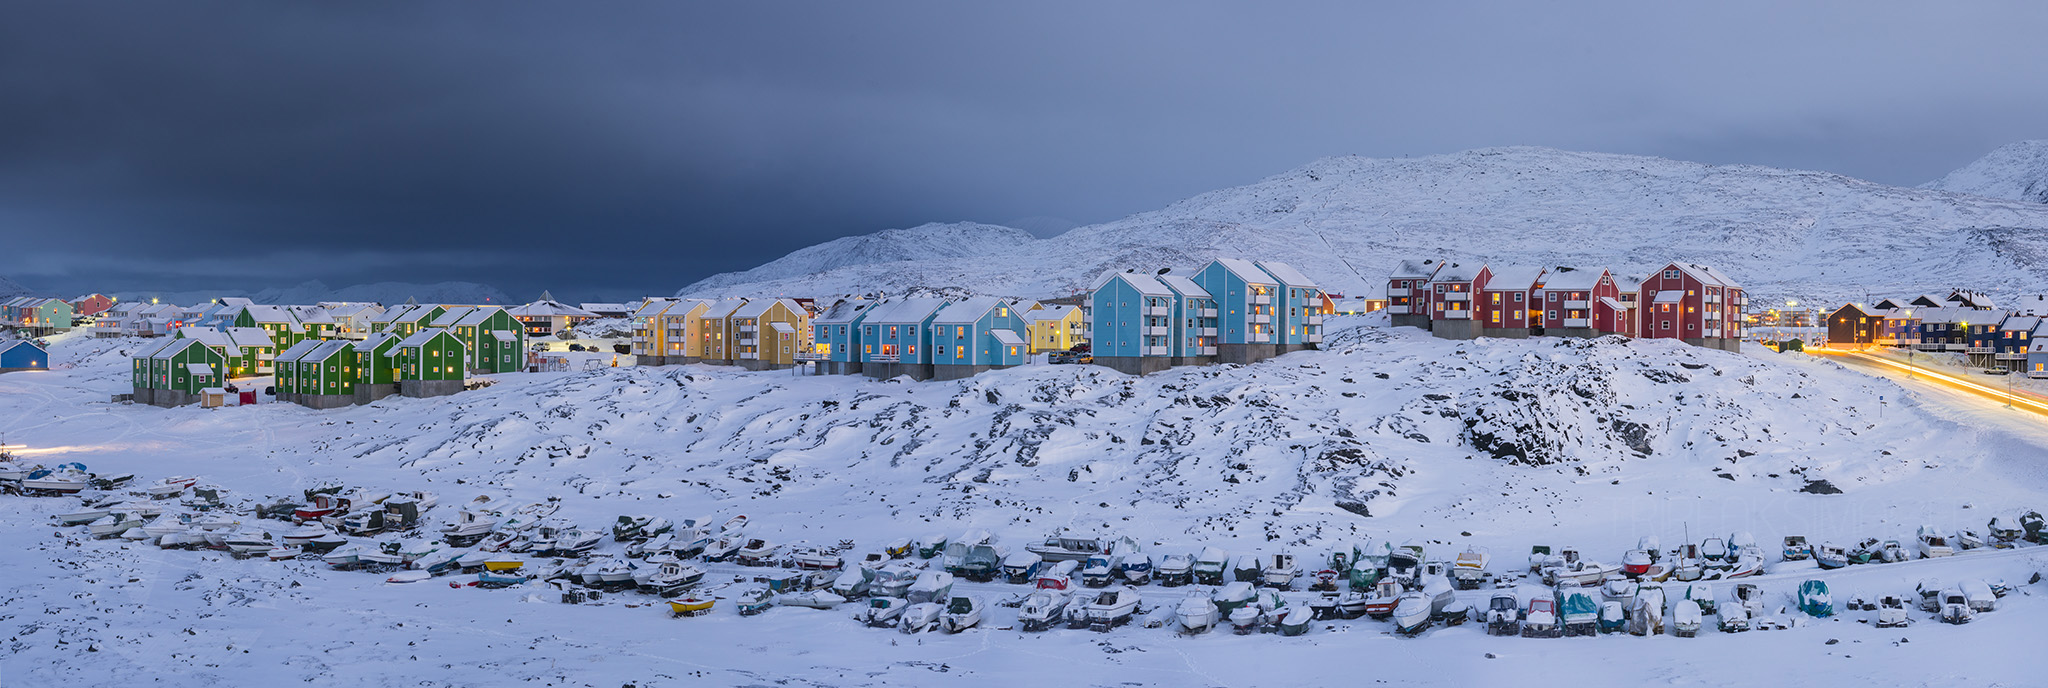 Winter Town, GreenlandNuuk, capital of Greenland shocked us with bitter cold and only a few depressing hours of sunlight everyday. It was by chance that we had this image as randomly walking around in deep snow coupled with a small dose of curiosity brought us into a housing estate. At the rear of it all laid this scene ahead. A multi-image pano with our new system, the Sony A7Rii, it proved a handful for our travel laptop of choice, an 11 inch MacBook Air to process the files. Sony A7Rii, Canon 70-300 IS L with Kipon adaptor. Processed in Lightroom CC.